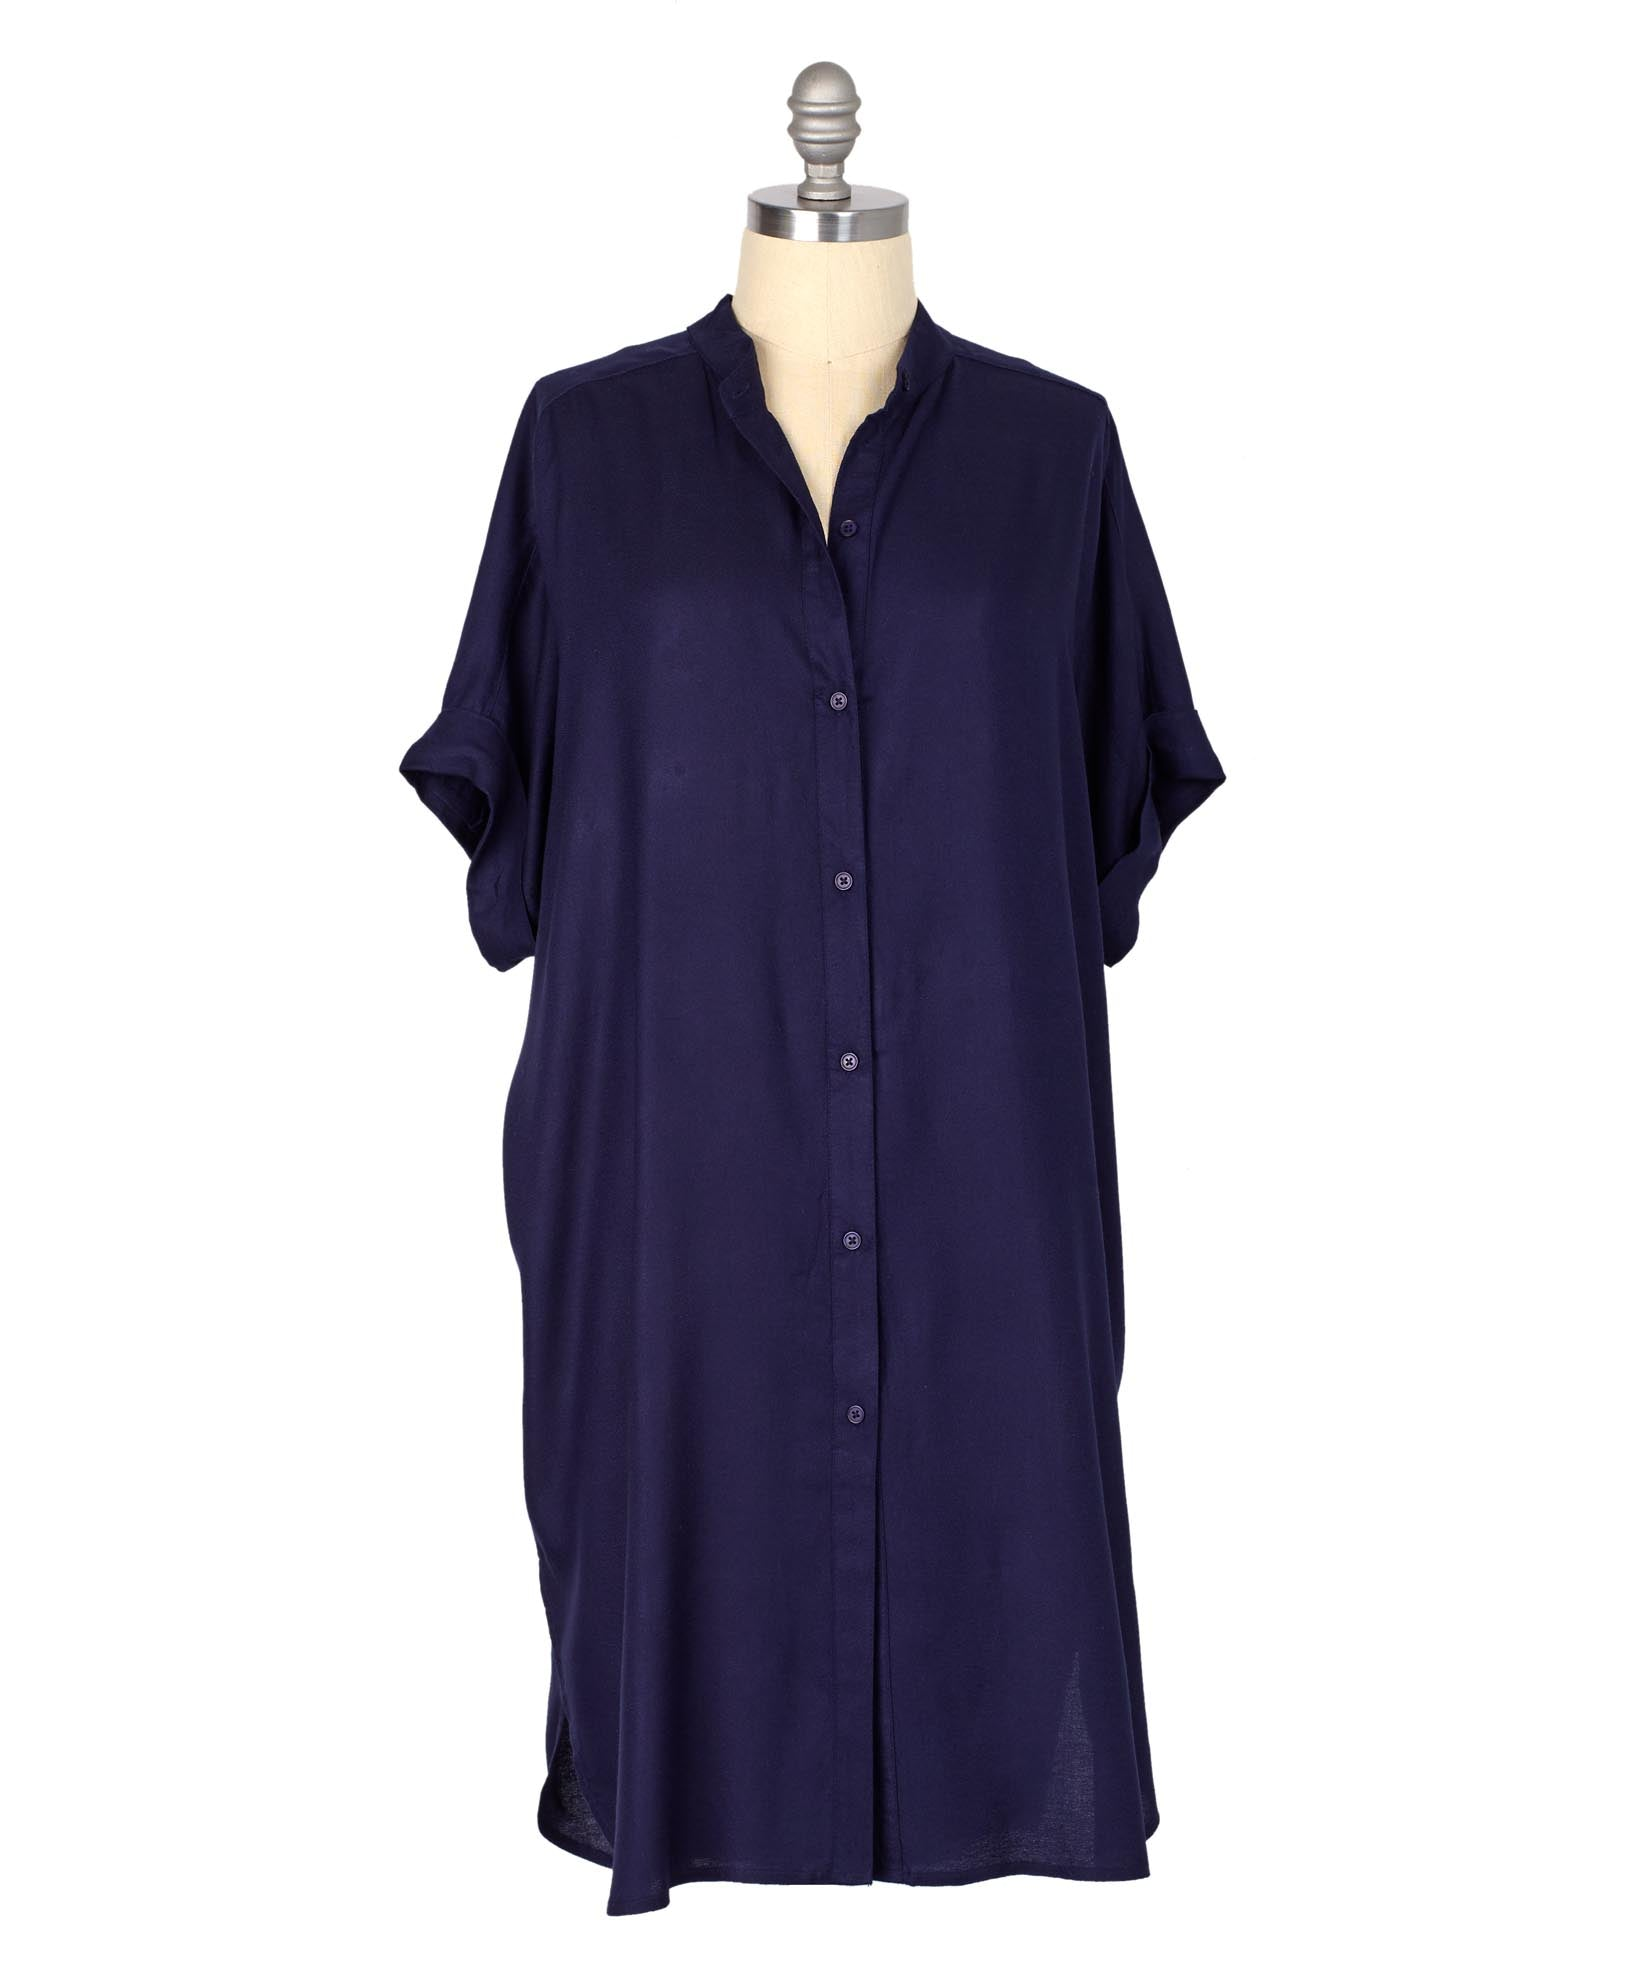 Navy - Solid Shirt Dress